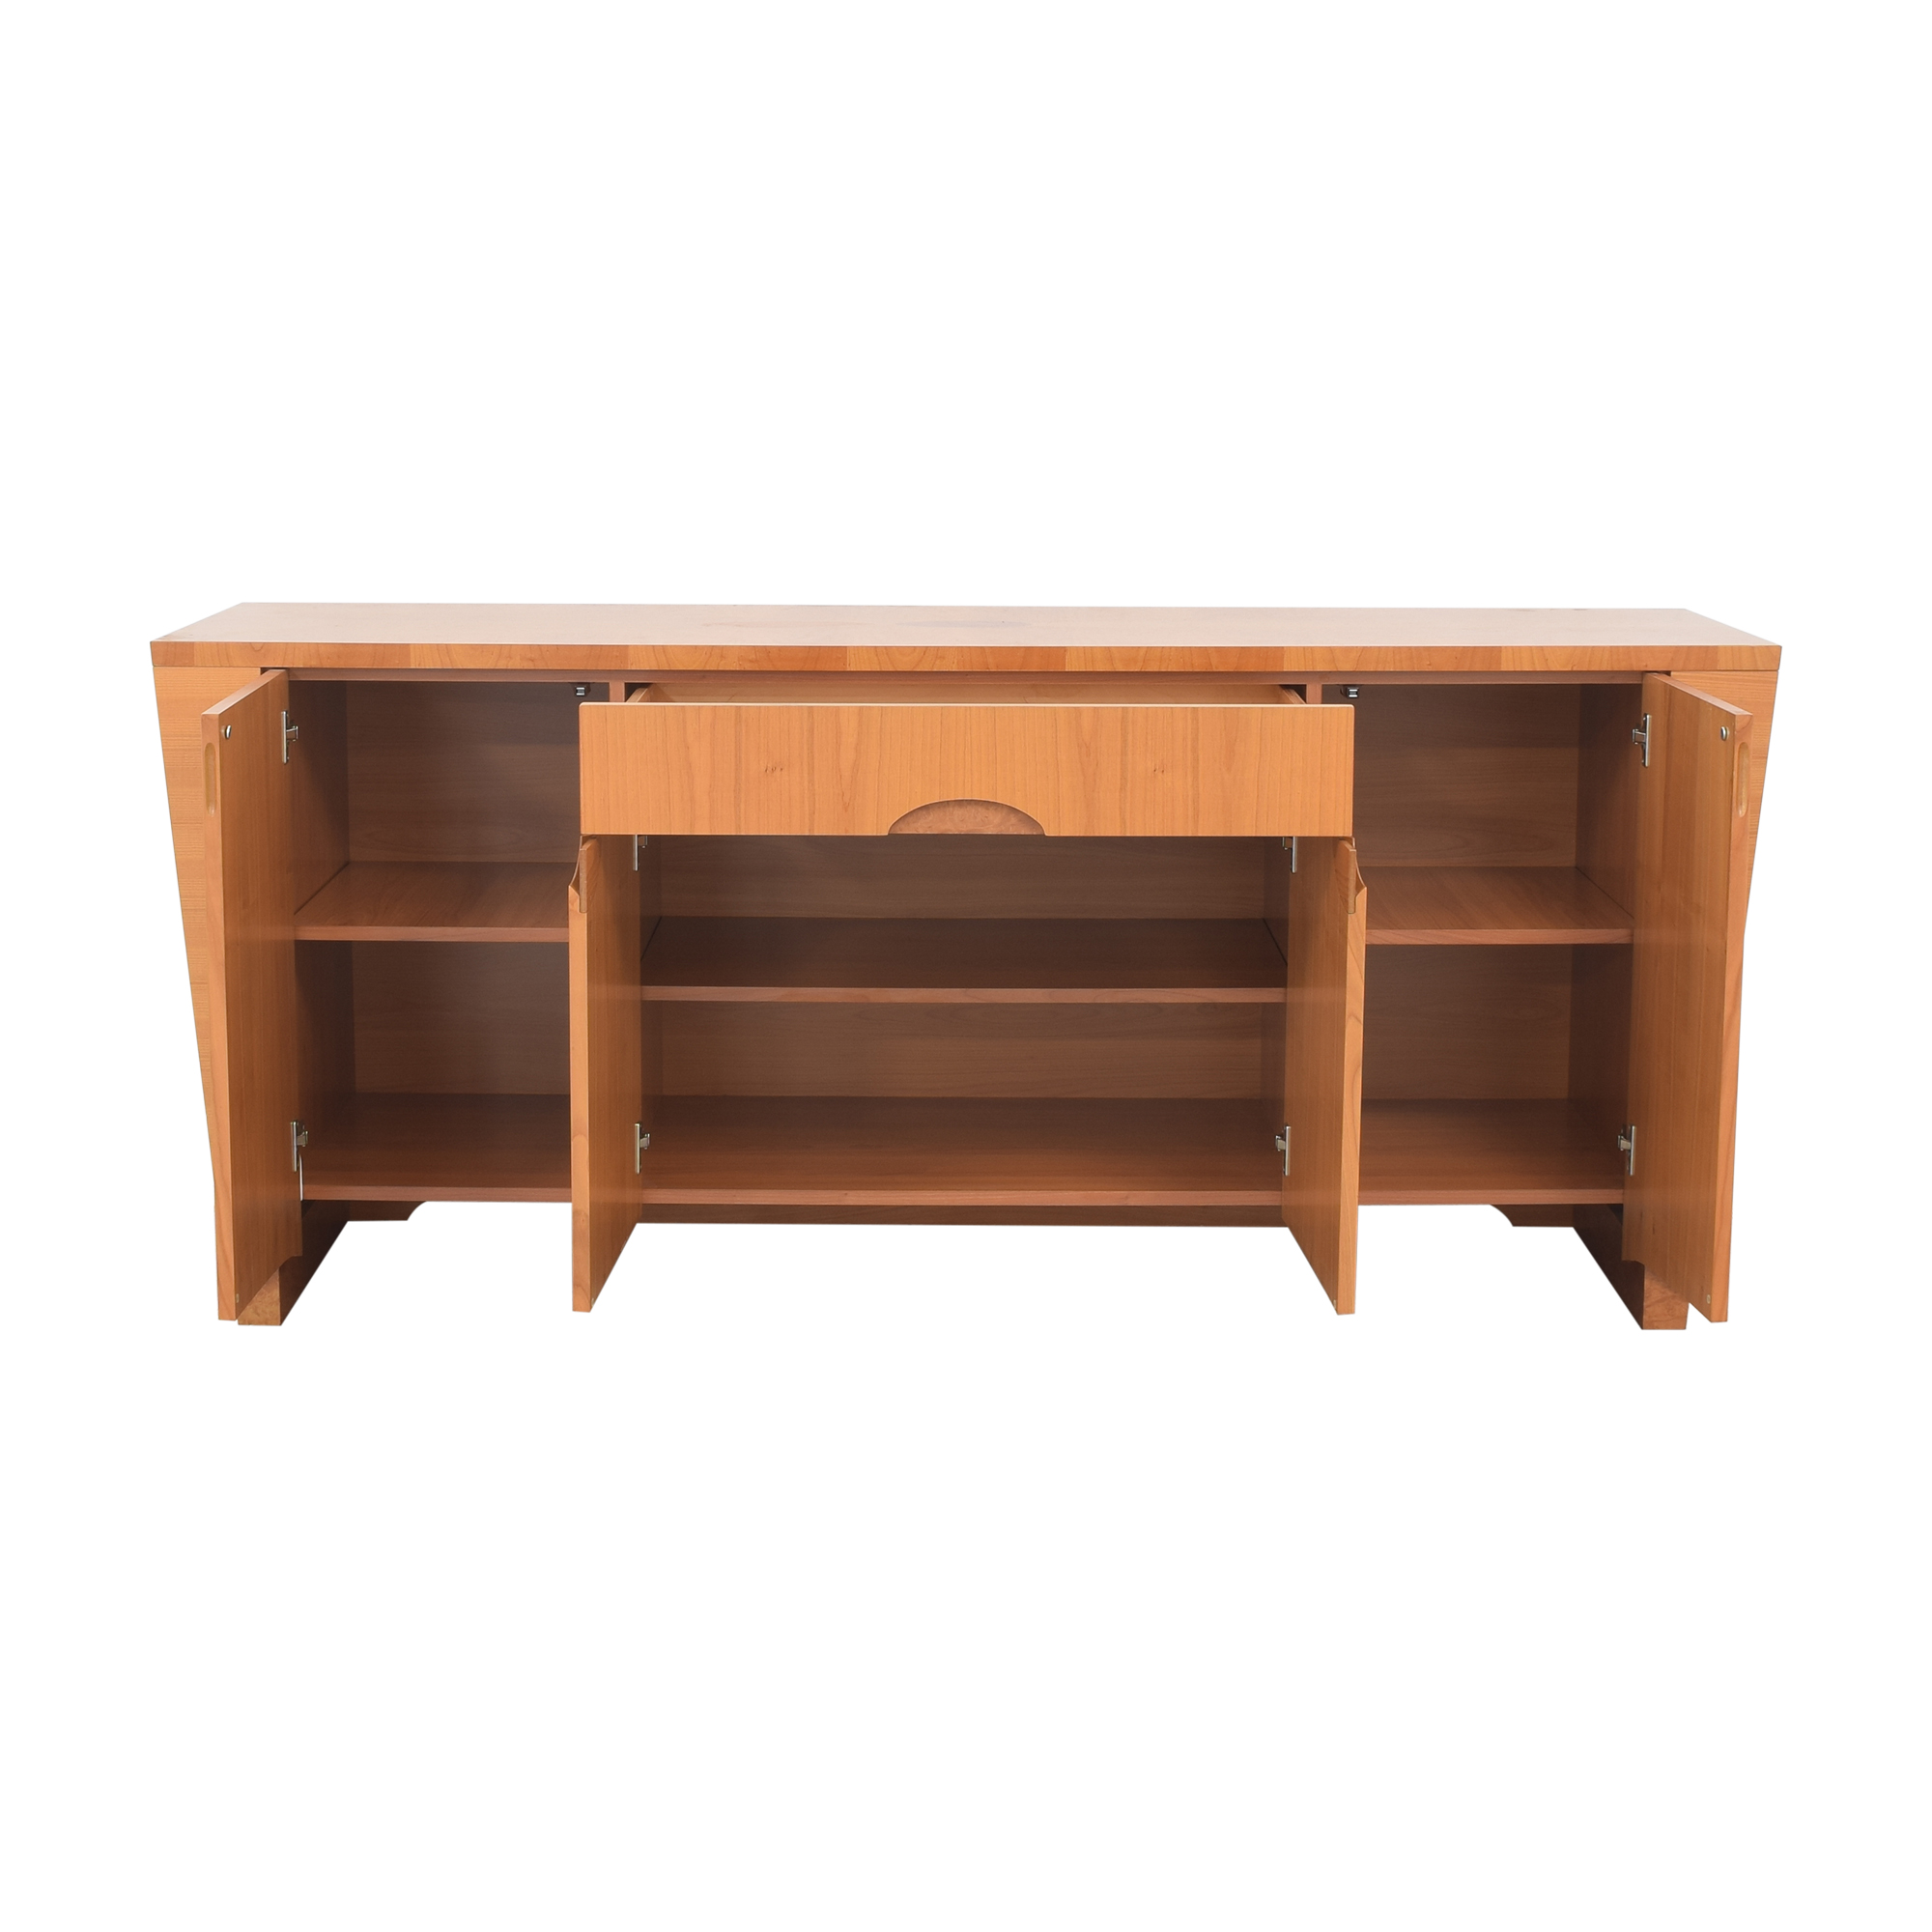 Excelsior Designs Excelsior Designs Italian Modern Style Buffet Cabinets & Sideboards